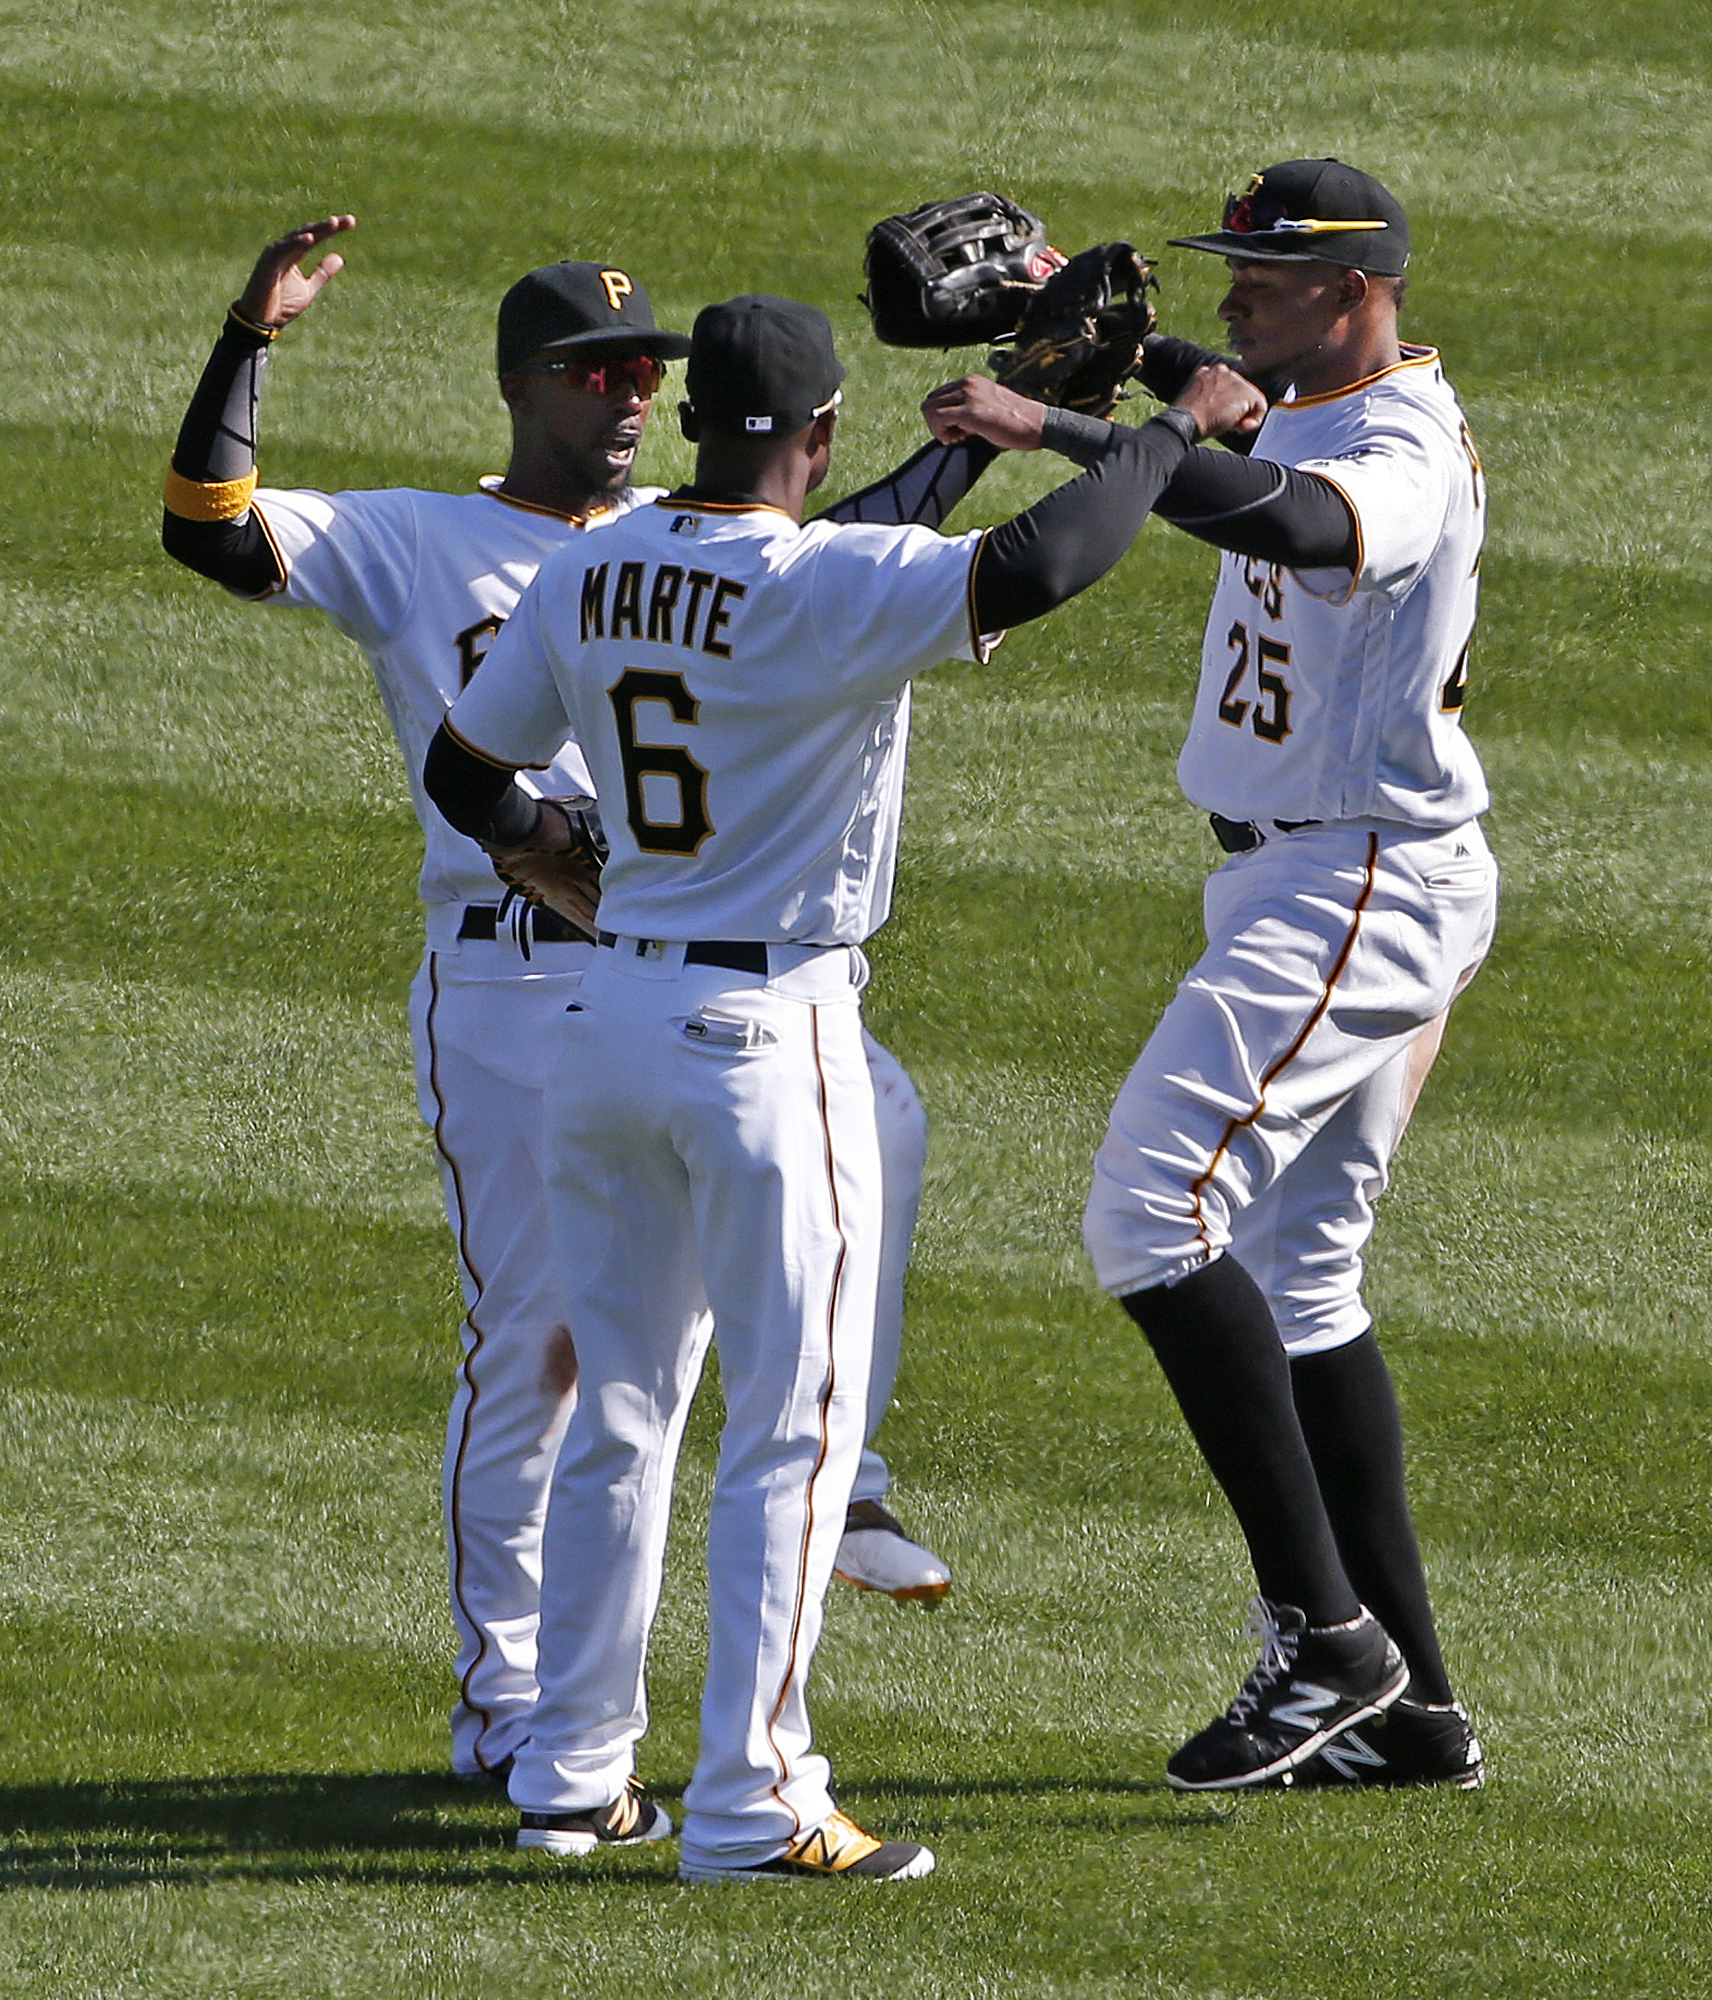 Pittsburgh Pirates outfielders Andrew McCutchen, left, Starling Marte (6) and Gregory Polanco (25) celebrate a 4-1 Major League Baseball opening day win over the St. Louis Cardinals in Pittsburgh, Sunday, April 3, 2016. (AP Photo/Gene J. Puskar)